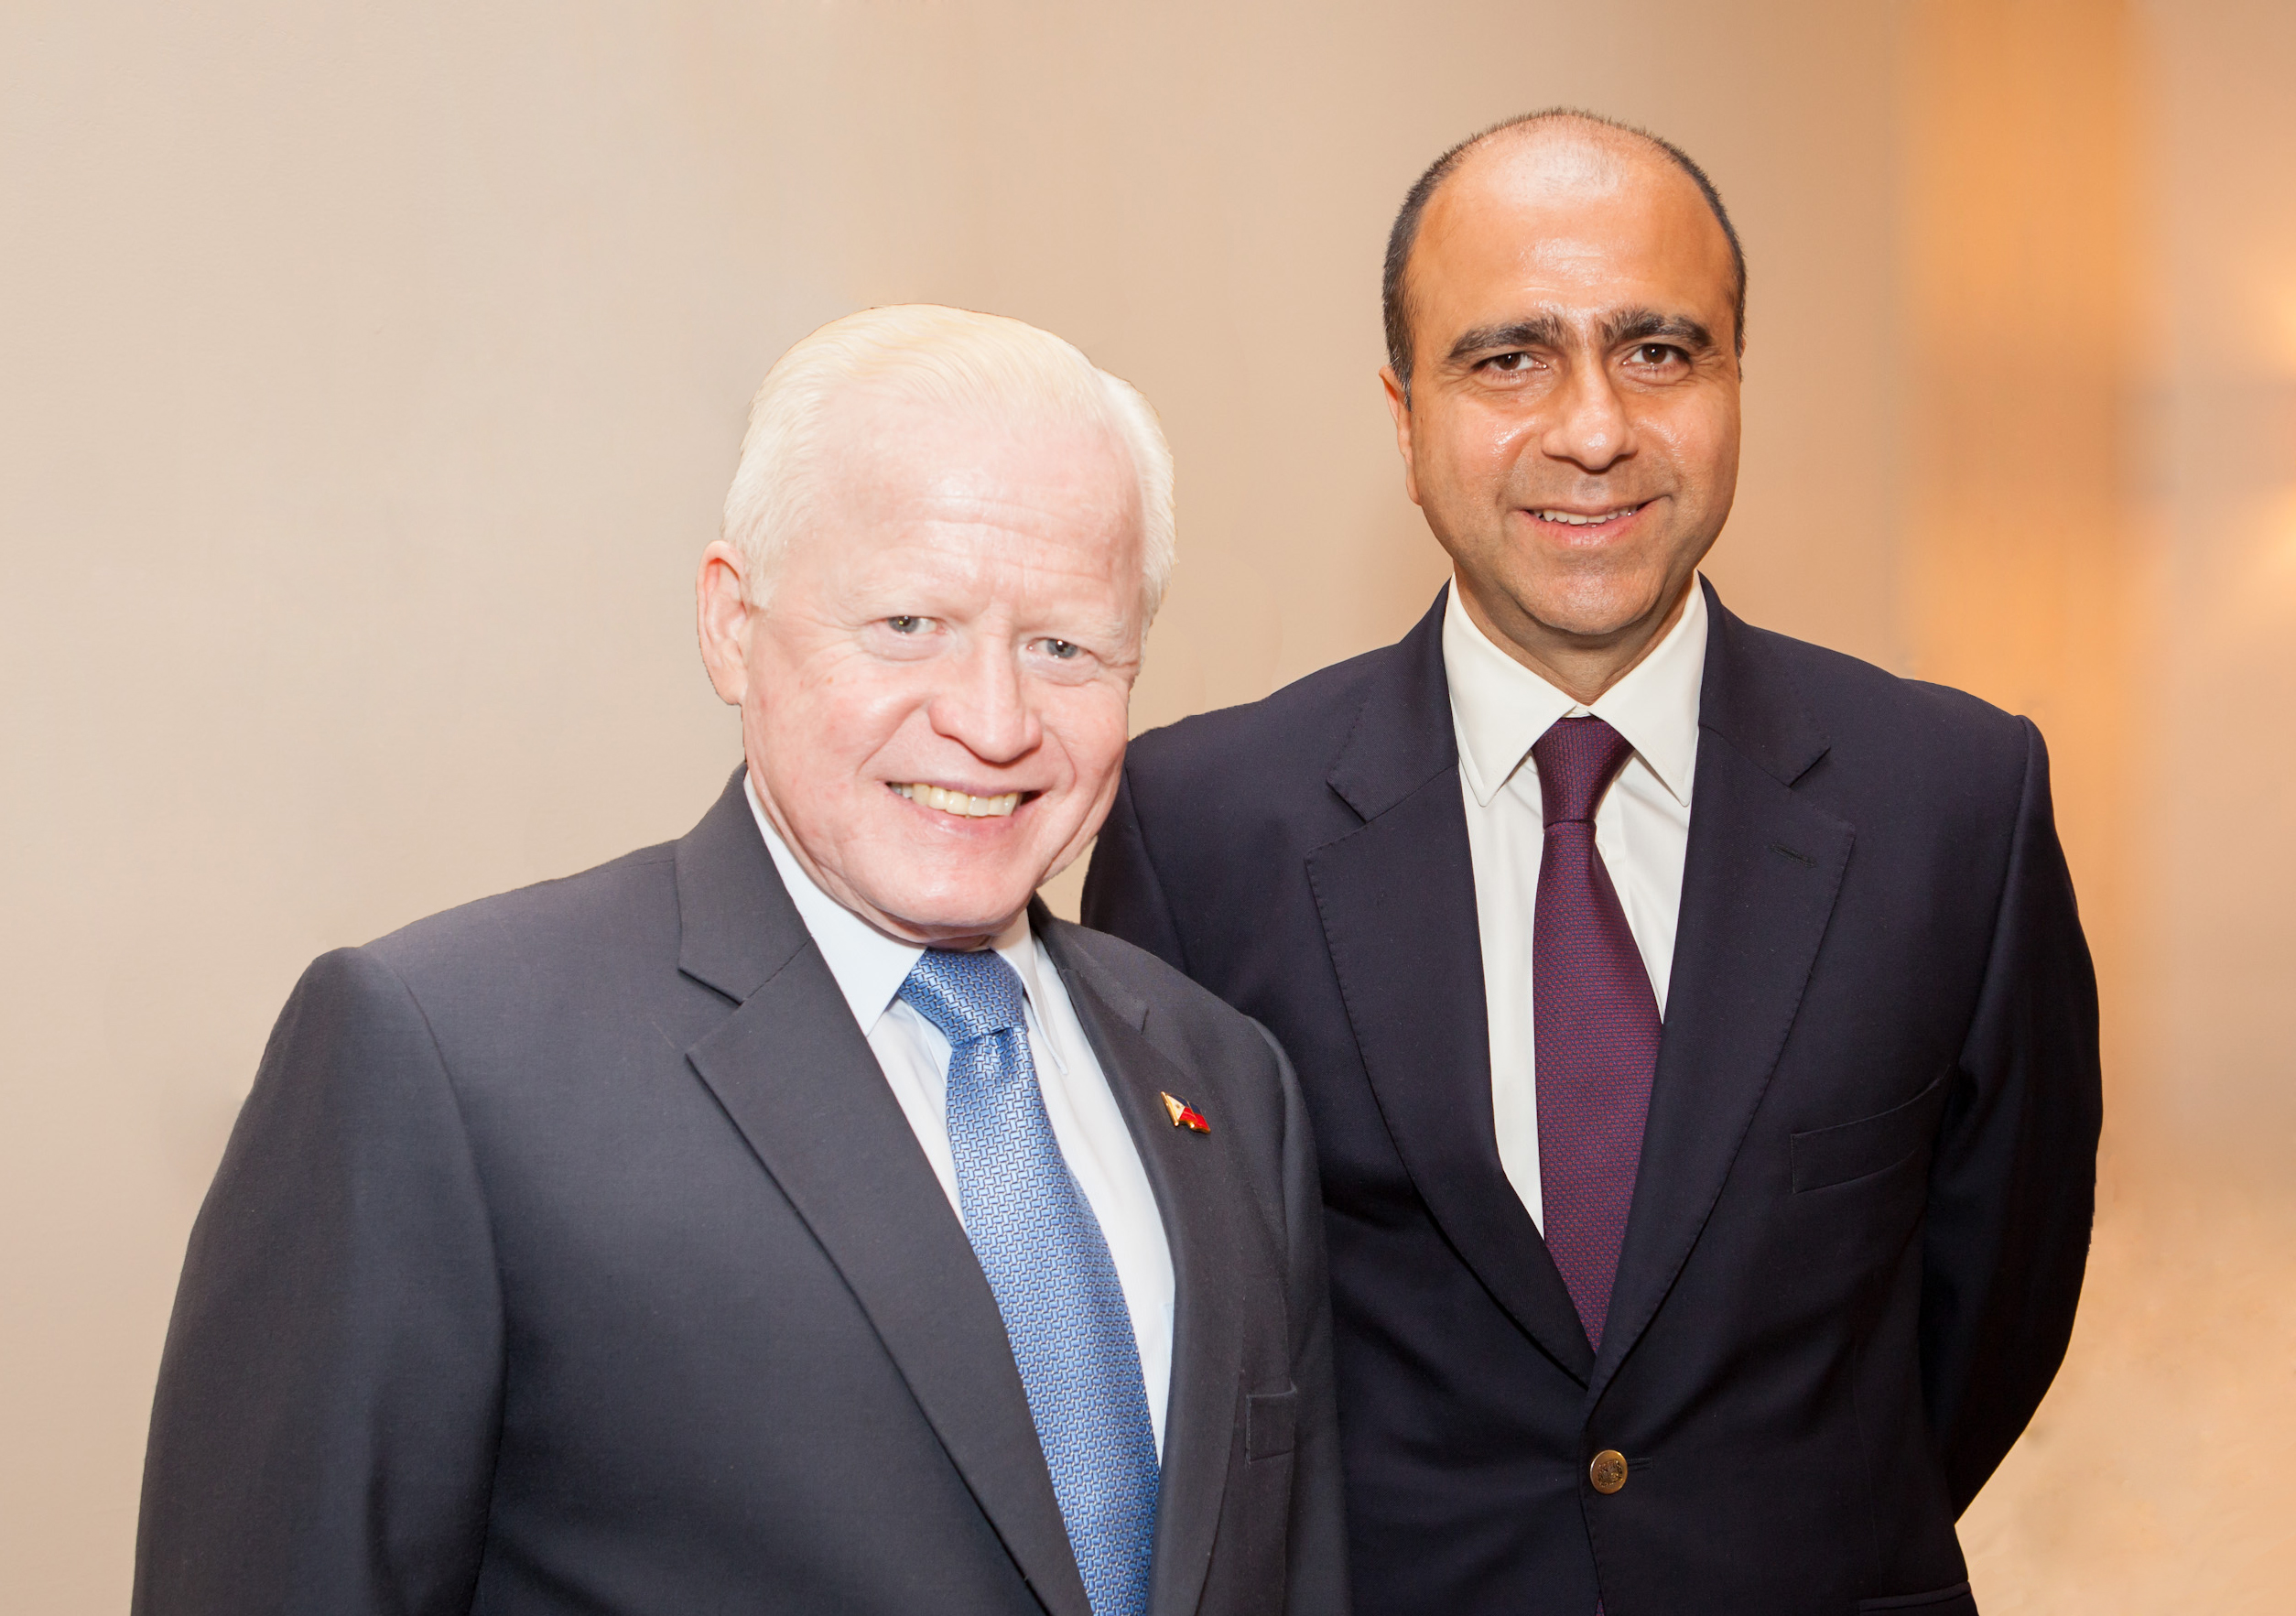 28 Aug 14 Ambassador Cuisia and TRANSFAST CEO Samish Kumar